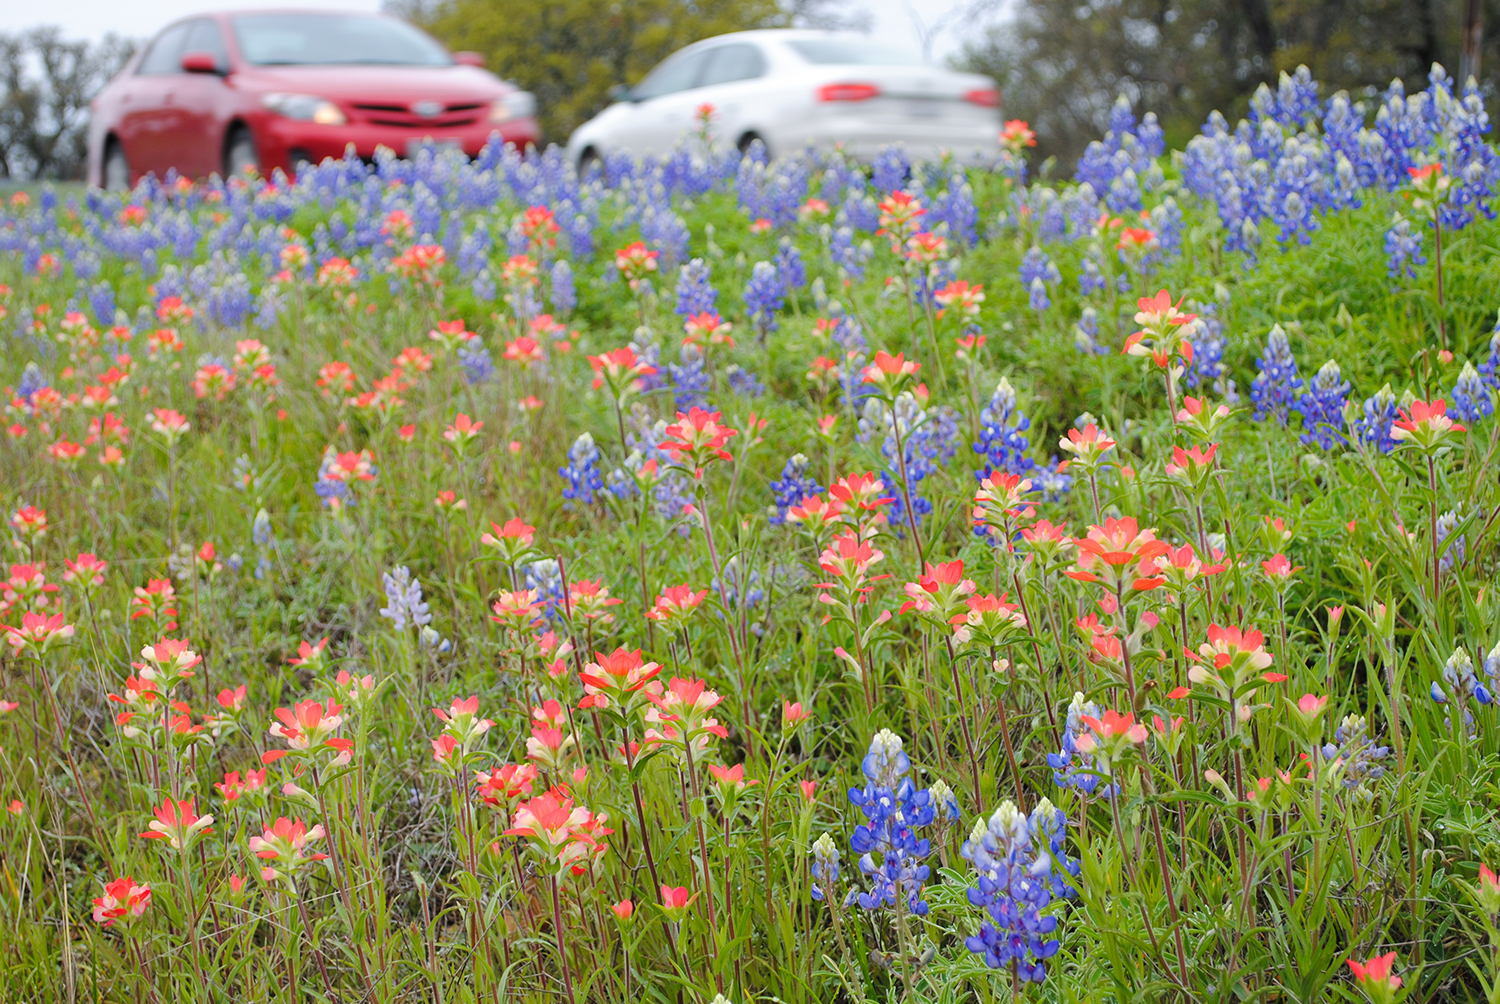 The blur of haste juxaposed with the focus of wildflowers.